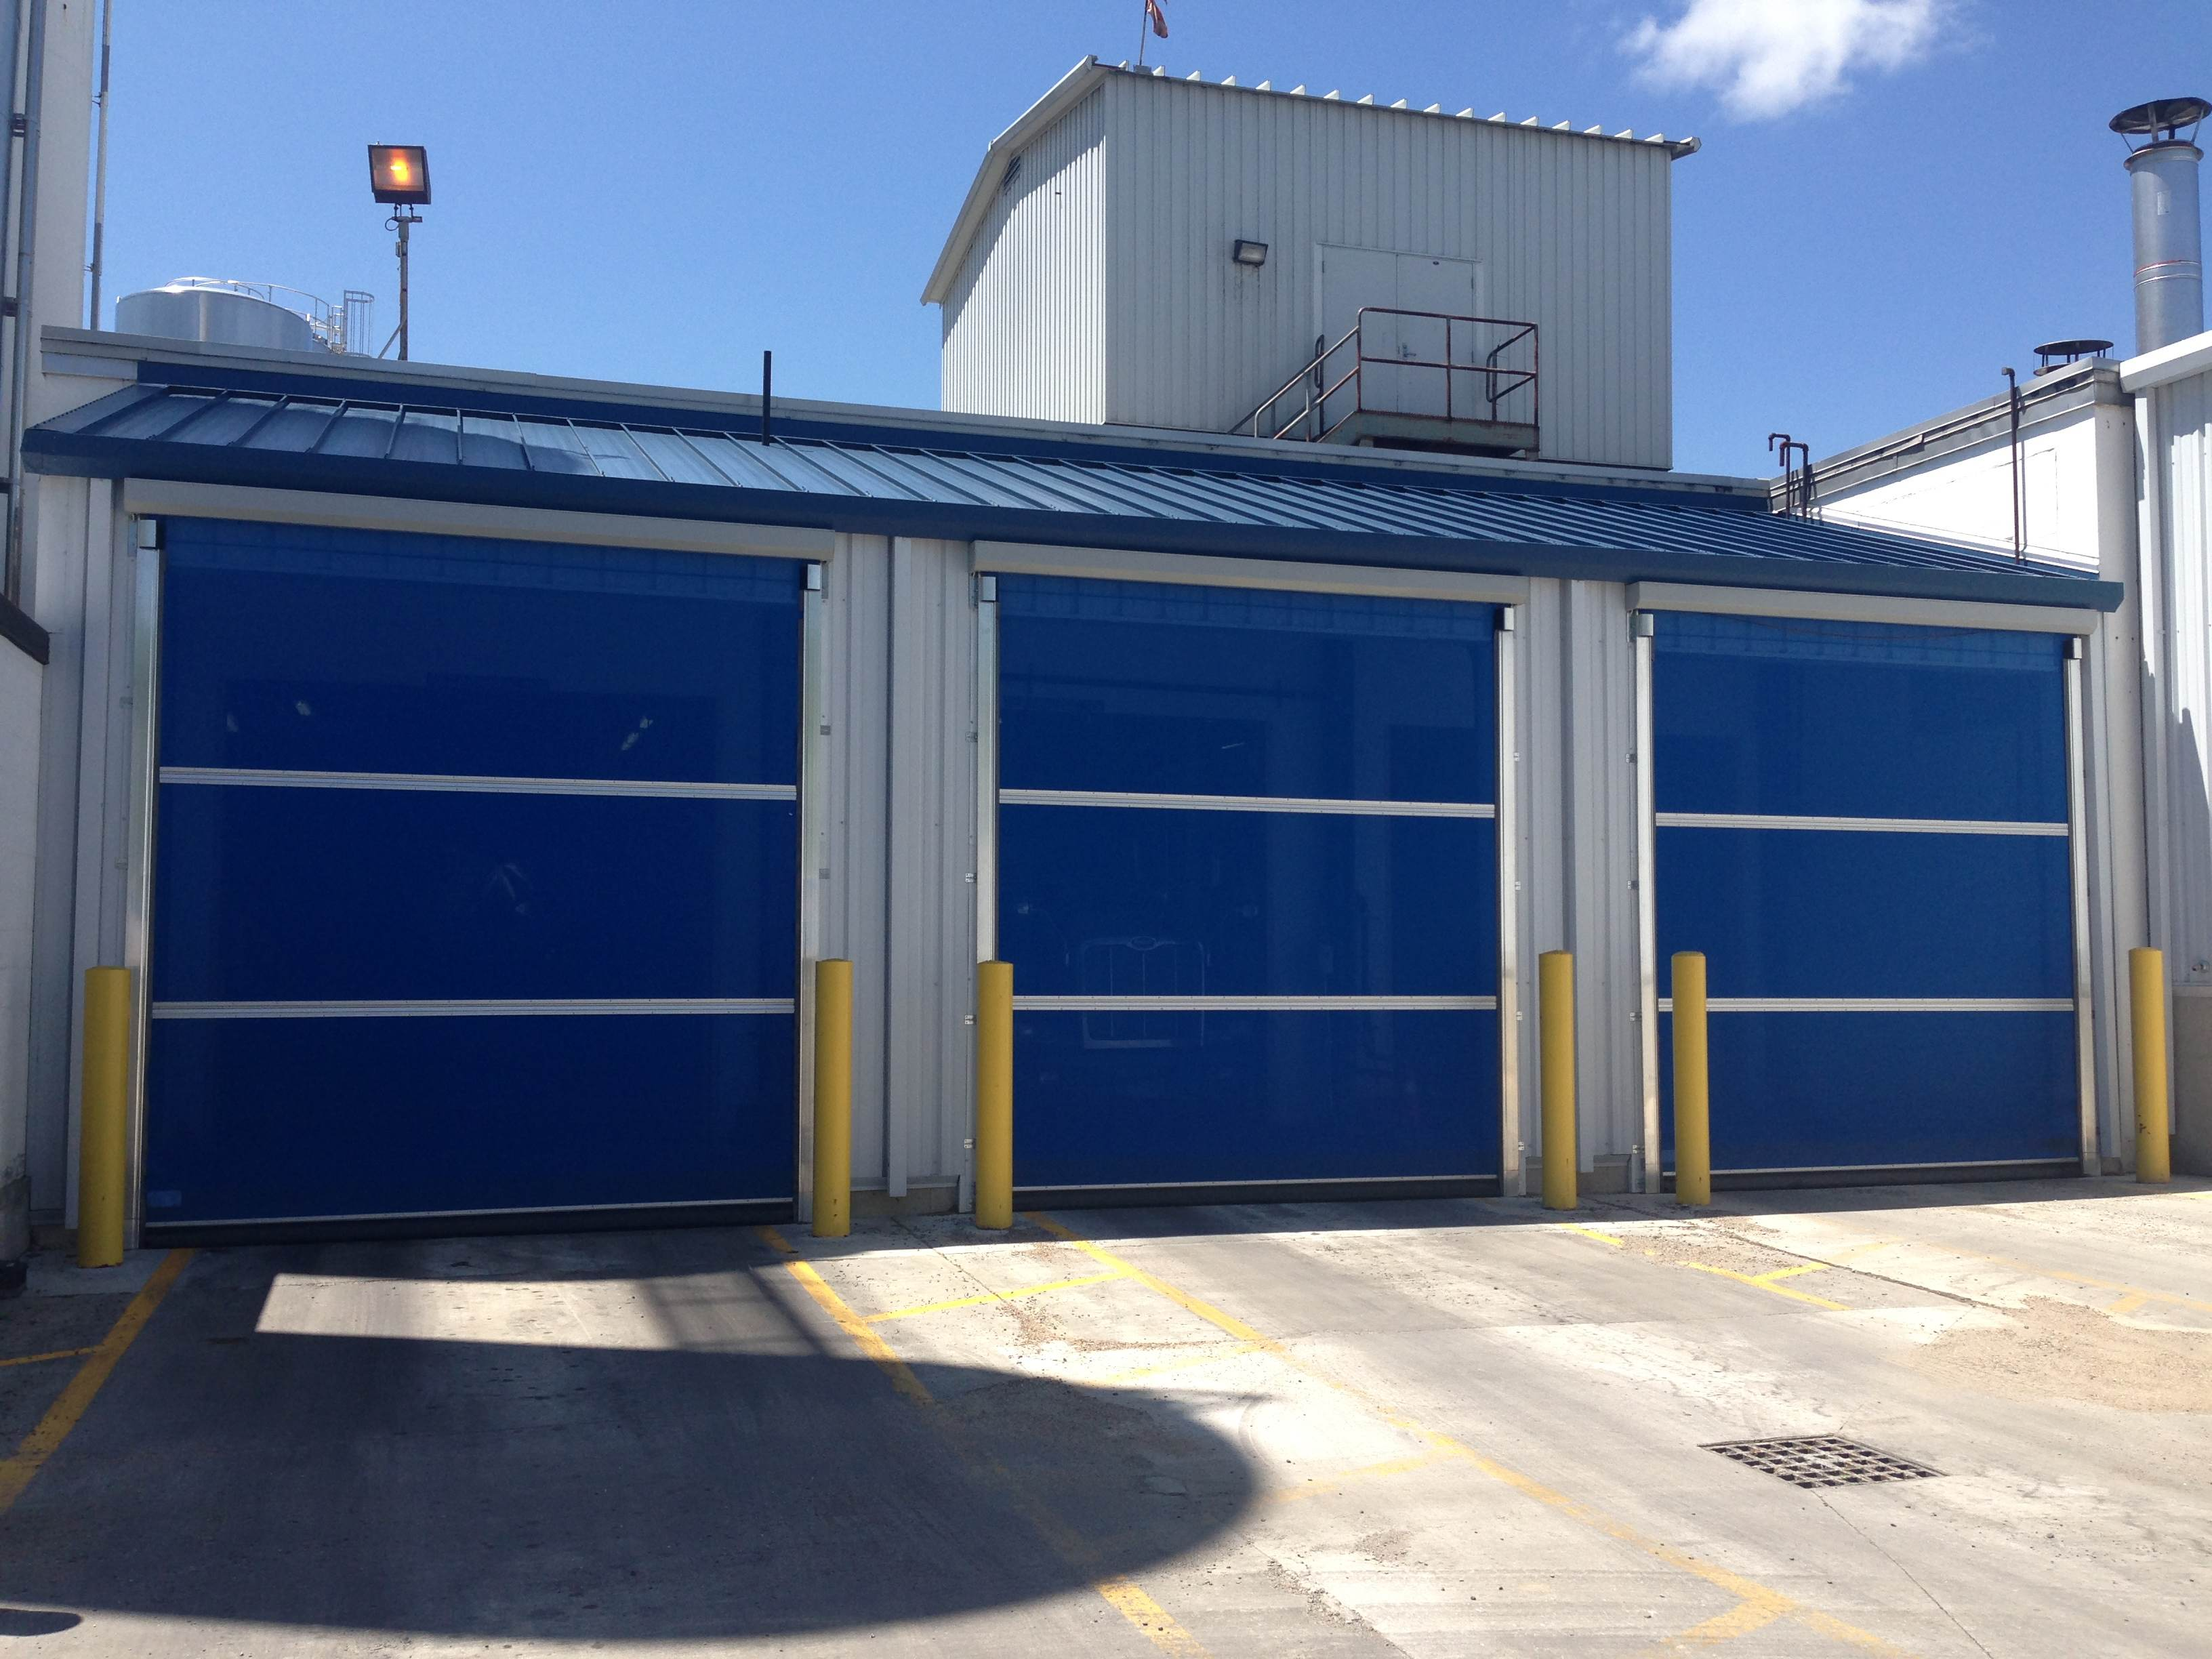 improvement garage have blue home a i just model opener door max